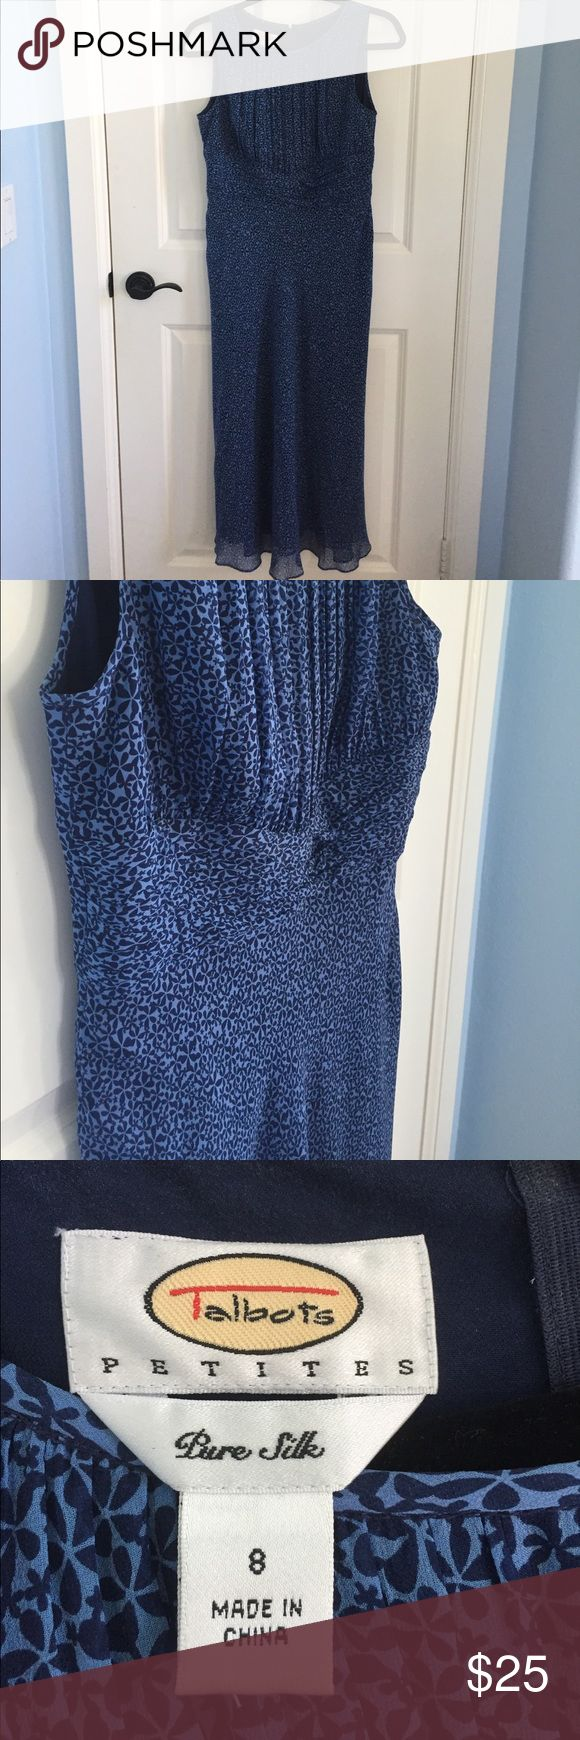 Talbots Petite Blue Flower Print Silk Dress This Talbots 8P silk dress has a cute print! It is a sleeveless maxi dress. Let me know if you have questions or want to bundle! Talbots Dresses Maxi